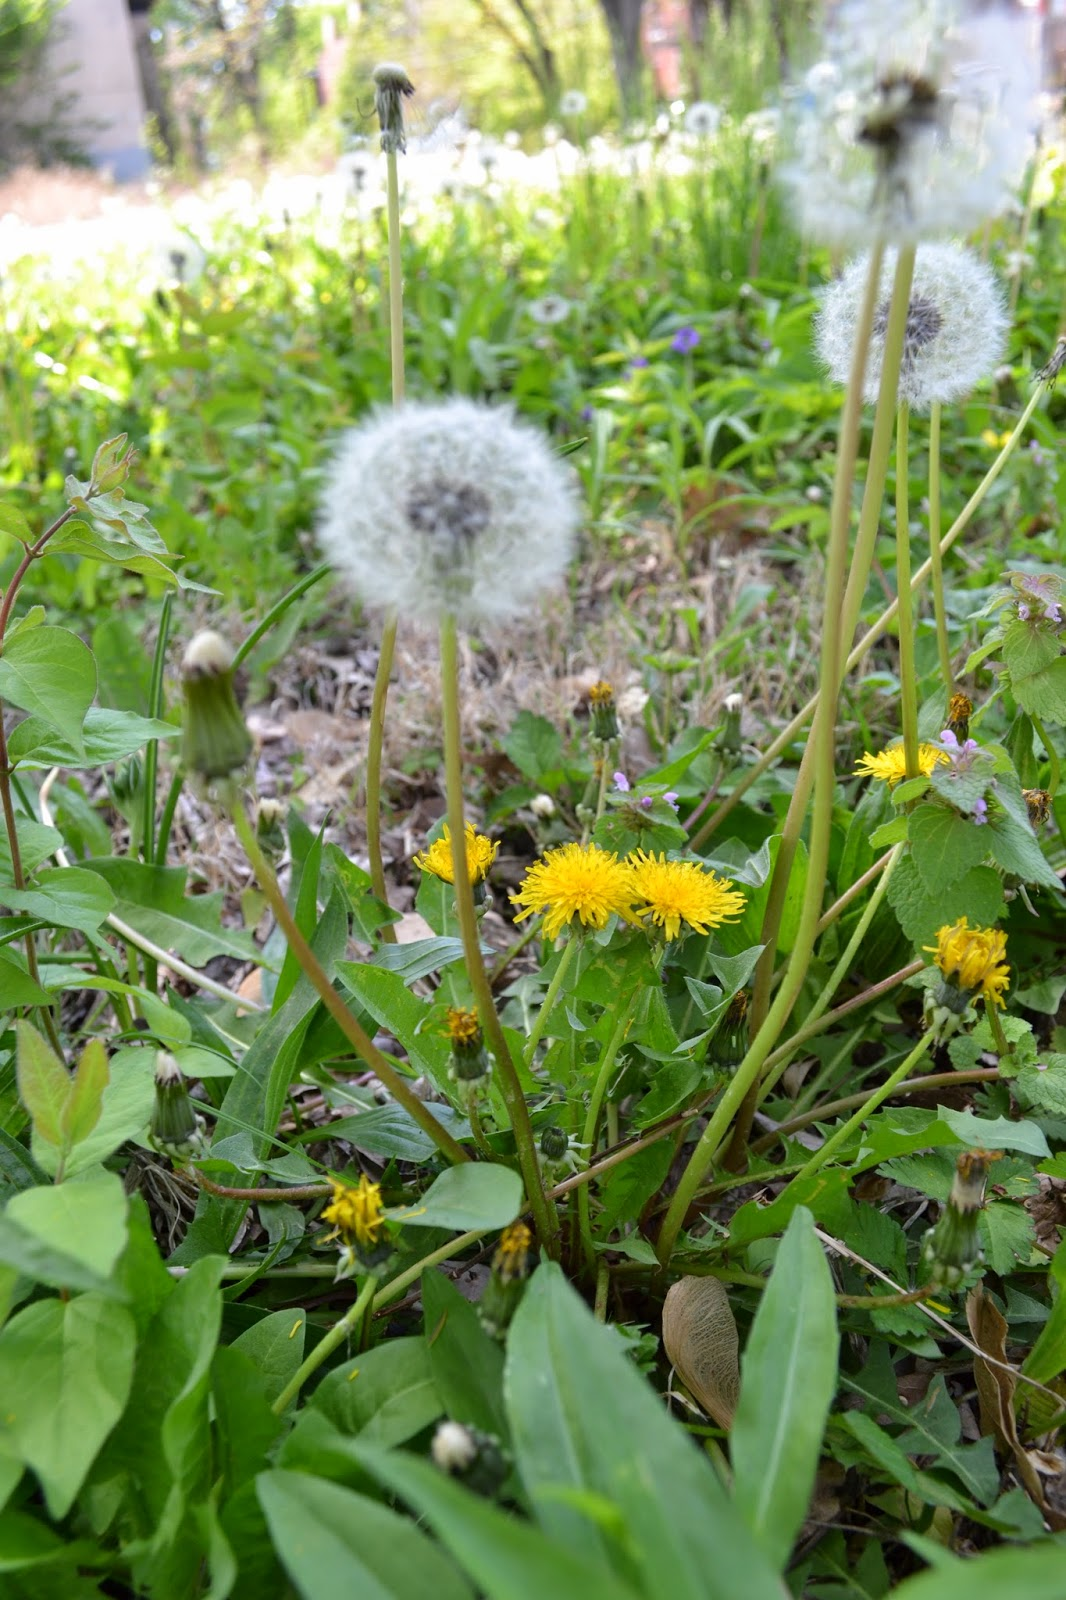 Health benefits of dandelion leaf and root.  Dandelions contain vitamins A, C, K, minerals, and flavanols